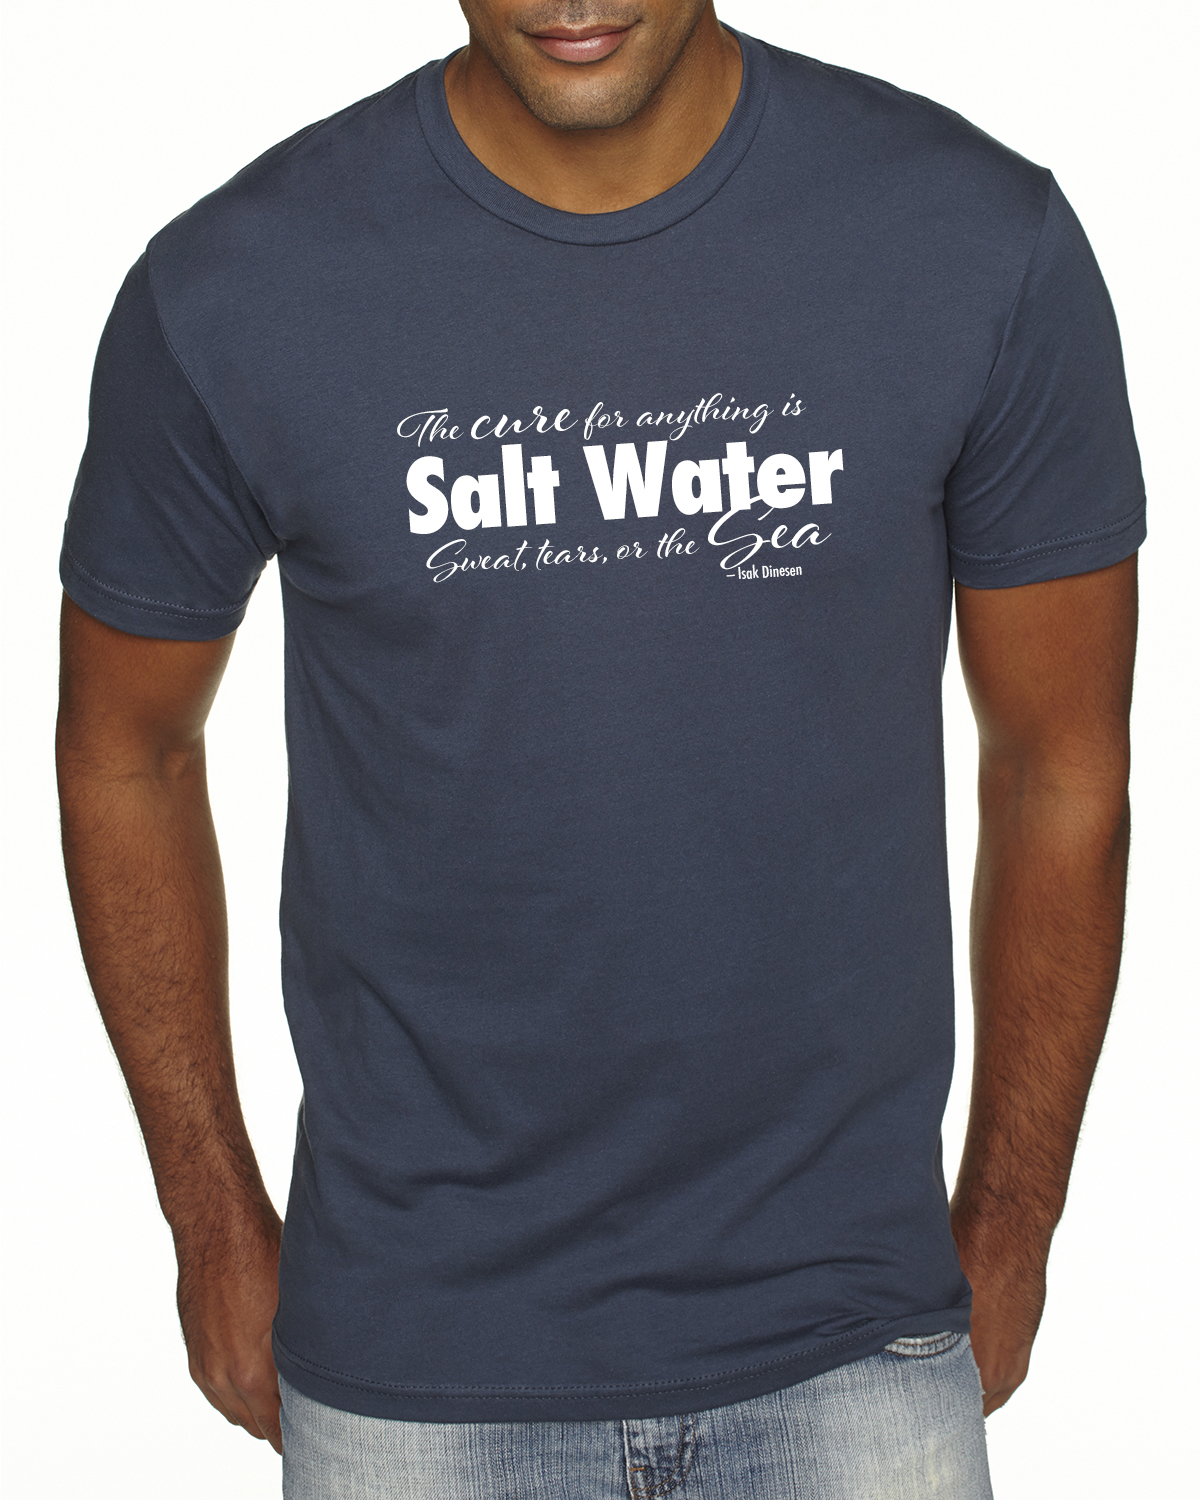 Men's Short Sleeve Salt Water QuoteT-shirt (Indigo)